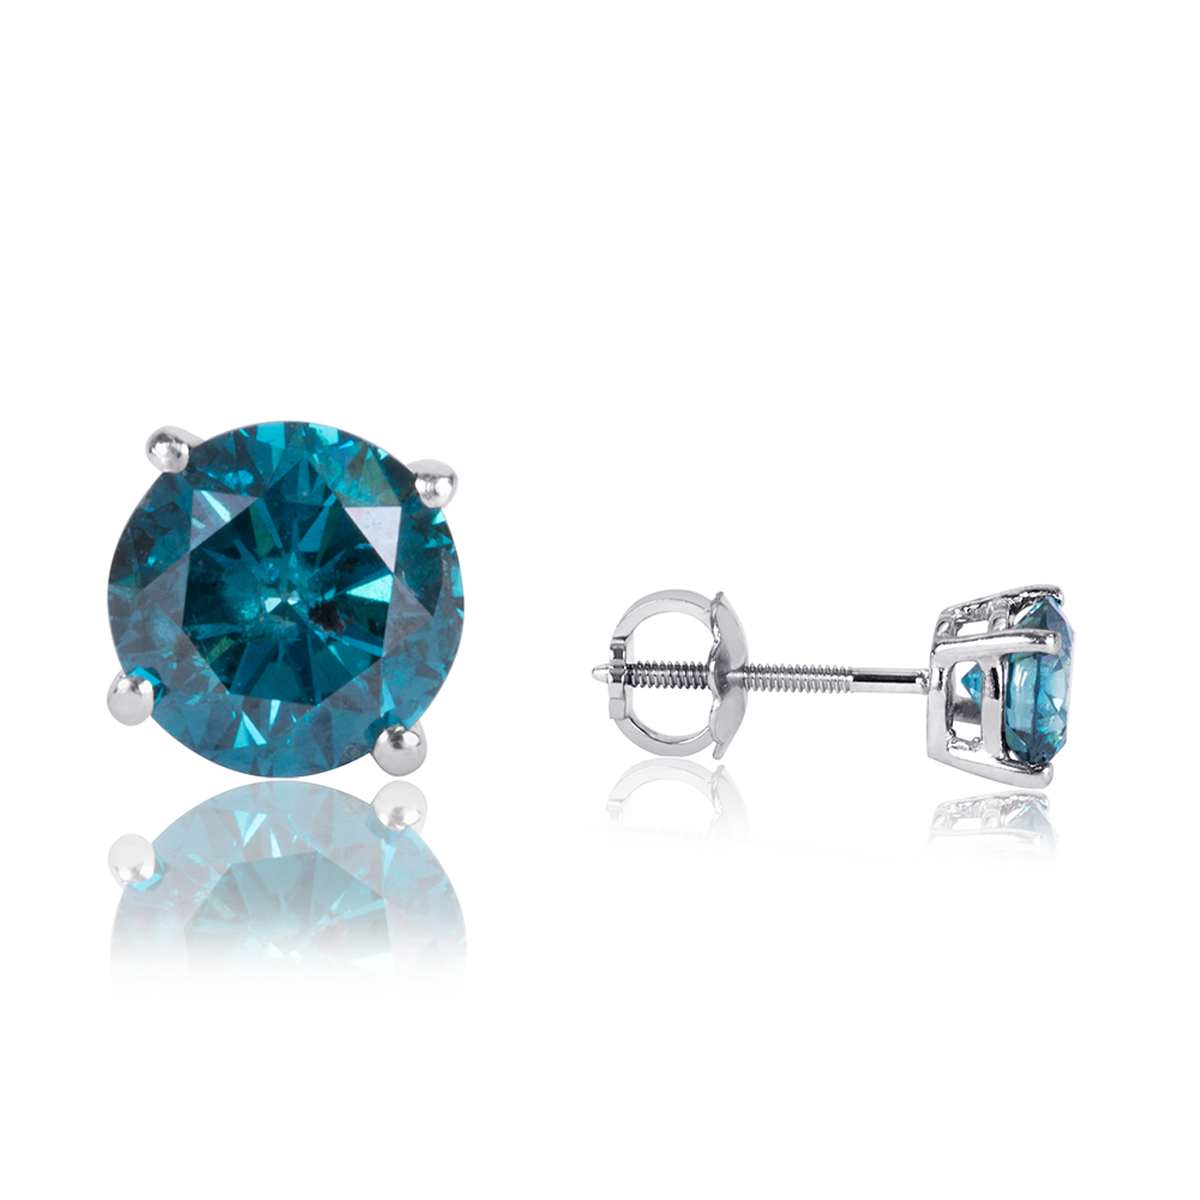 2 Carat Tw Round Cut Solitaire Blue Diamond Stud Earrings 14k White  Gold